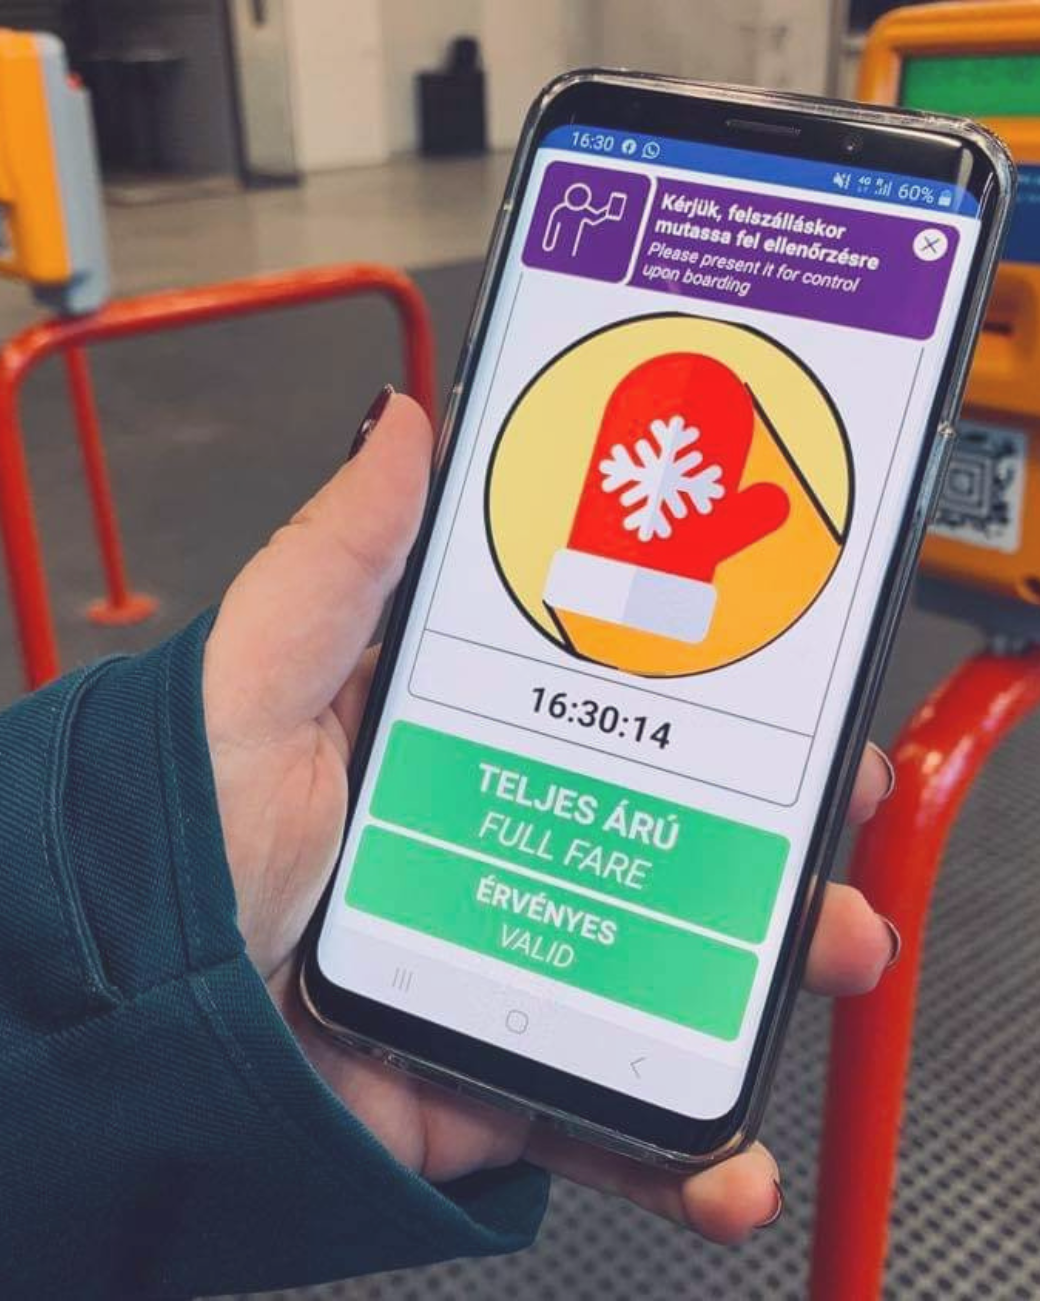 How to Use Mobile Tickets in Budapest: pictured animation on phone after validating